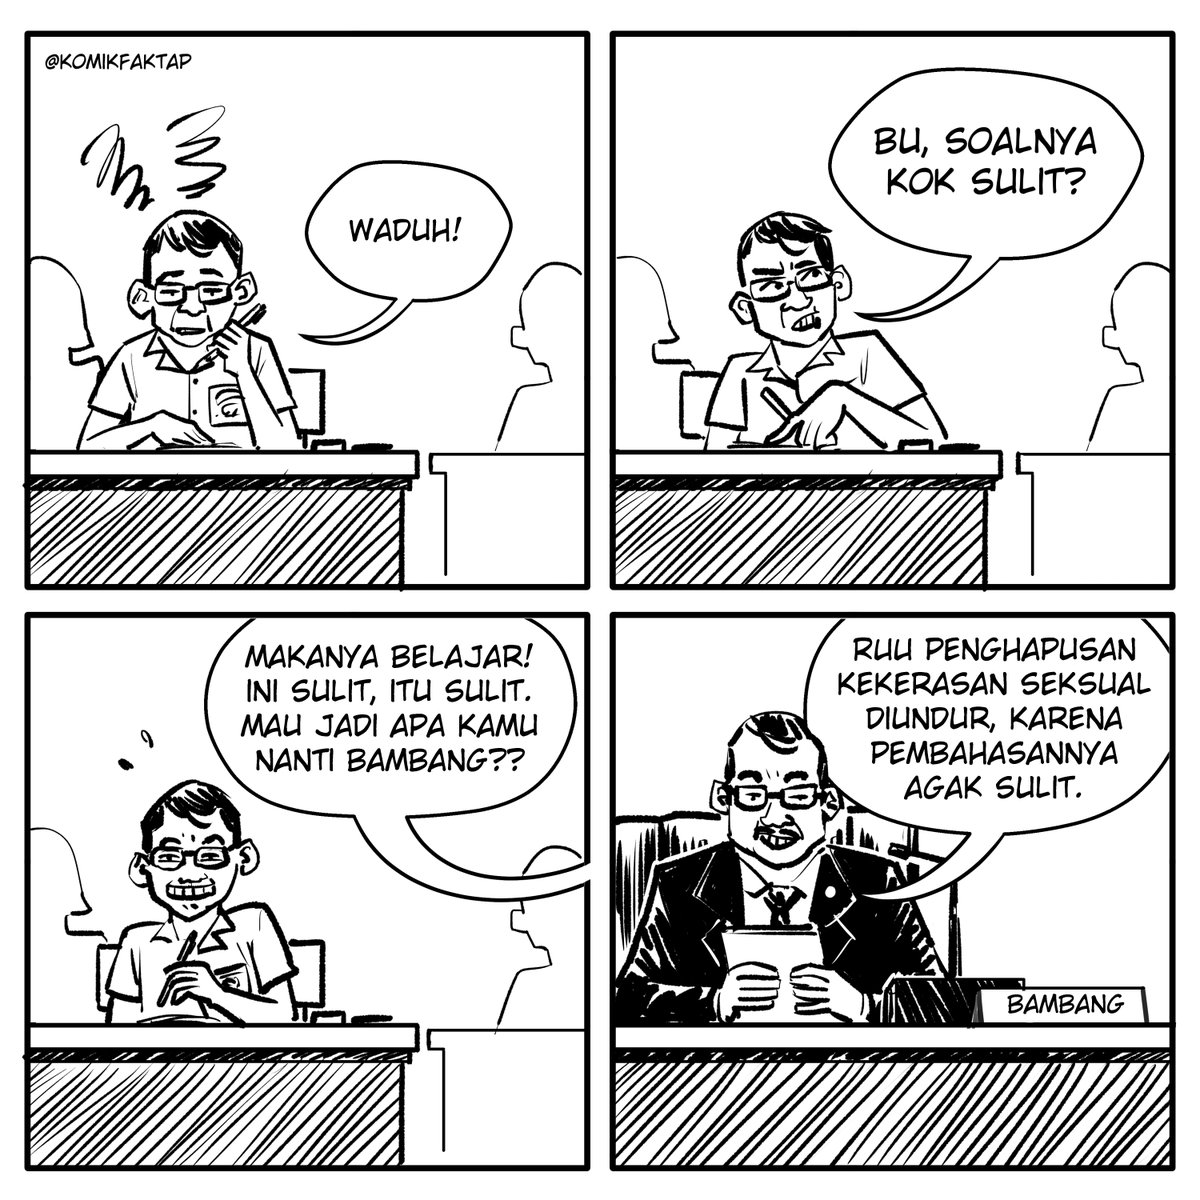 Sulit.  #KomikFaktap https://t.co/5QBcY4PjFe